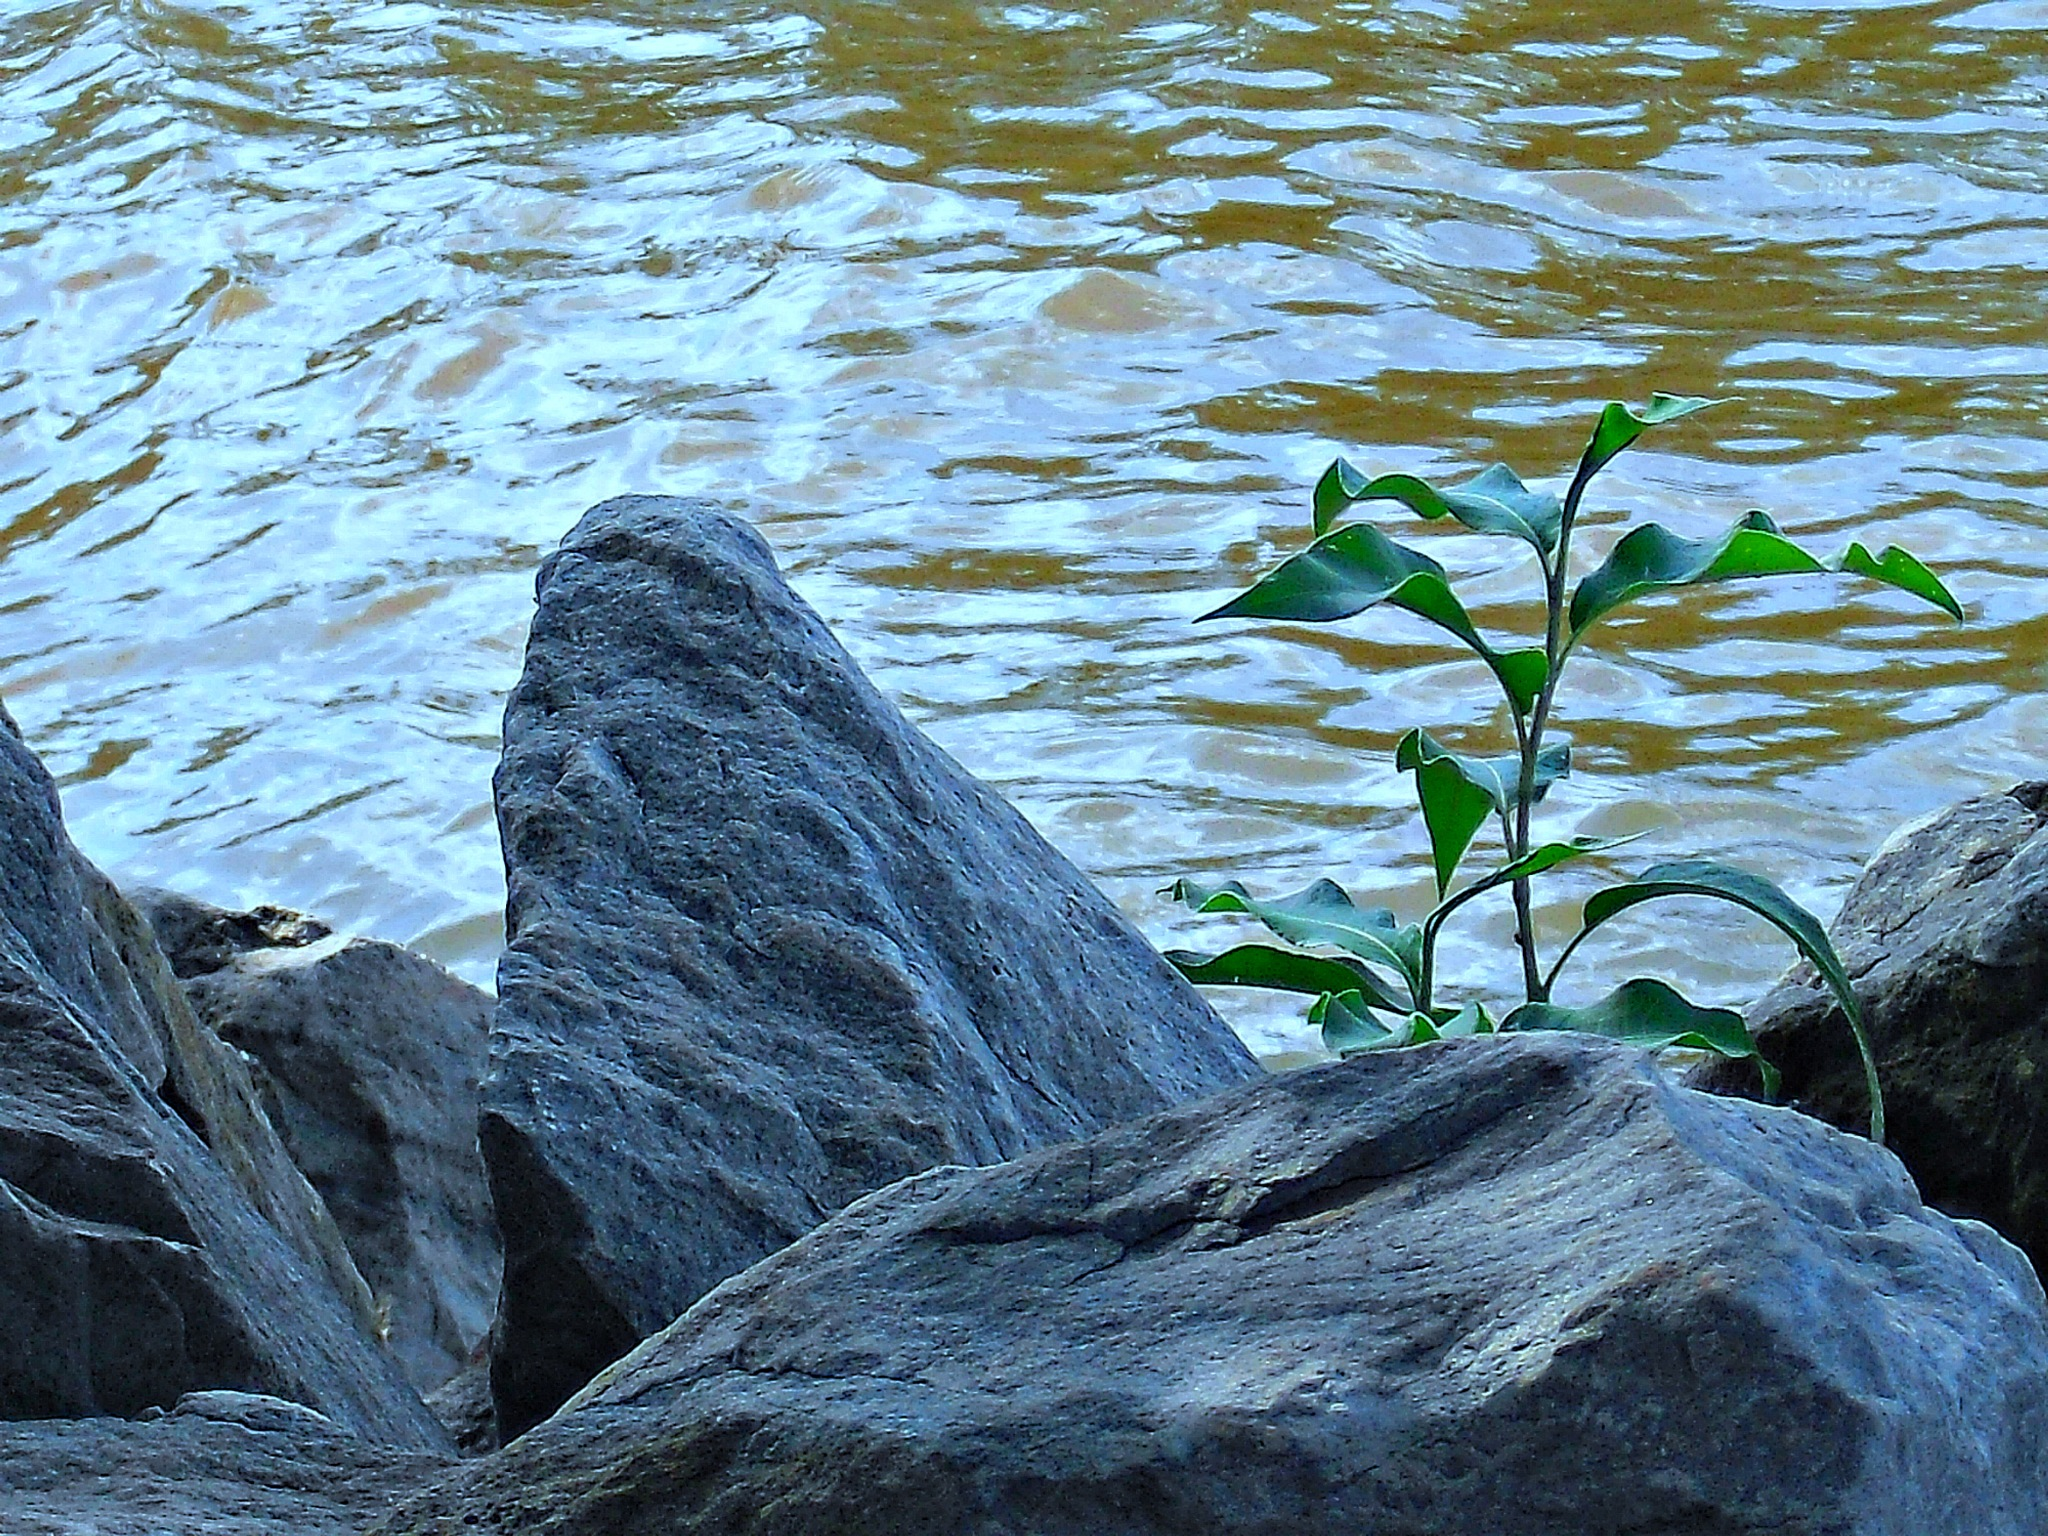 Amongst The Rocks & Water . . . Life Exists by Lione'sLens